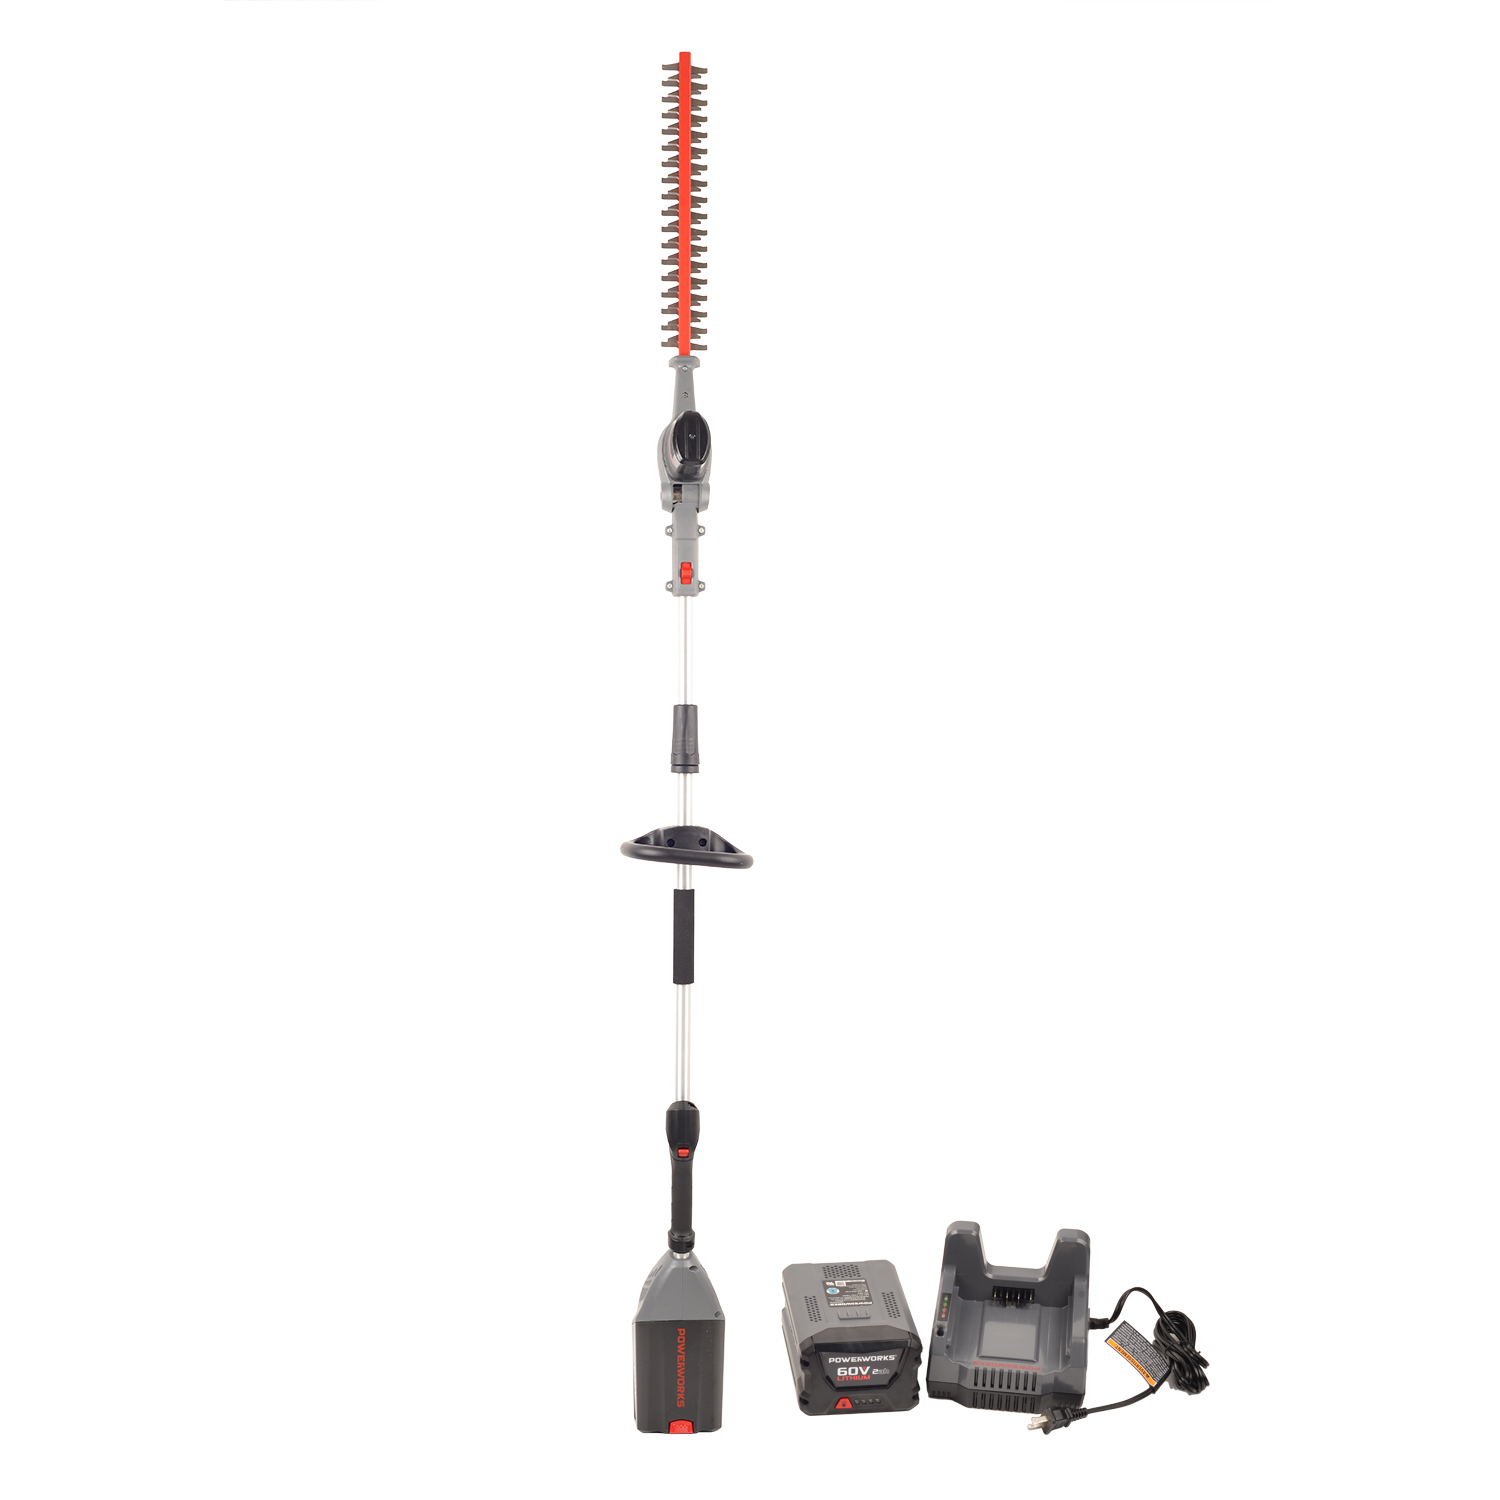 Powerworks 60v 20 Pole Hedge Trimmer 2ah Battery And